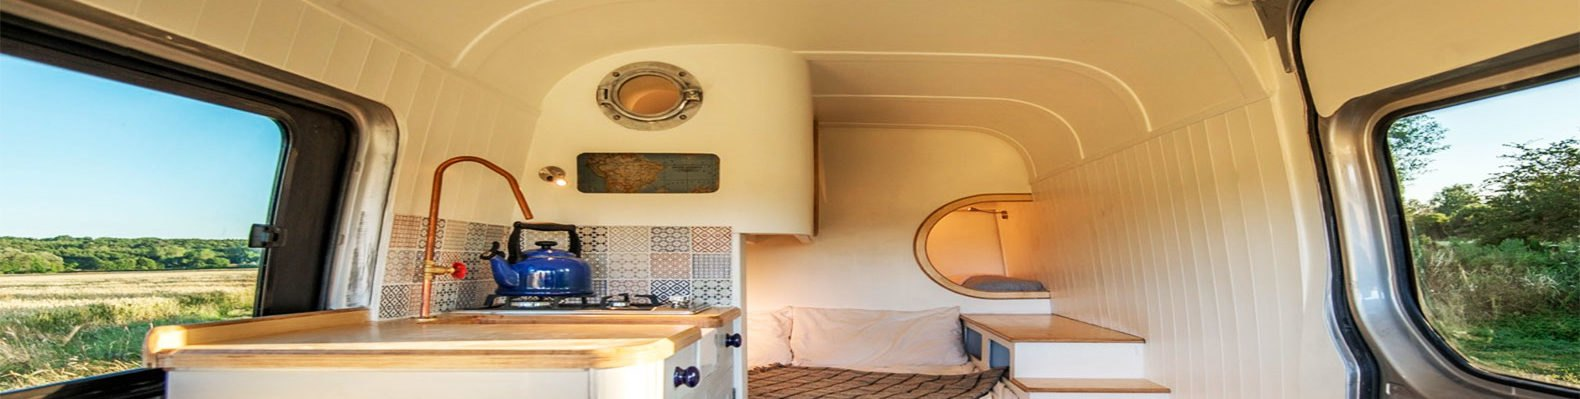 These 8 Amazing Van Conversions Will Inspire You To Ditch The Grid For Nomadic Life